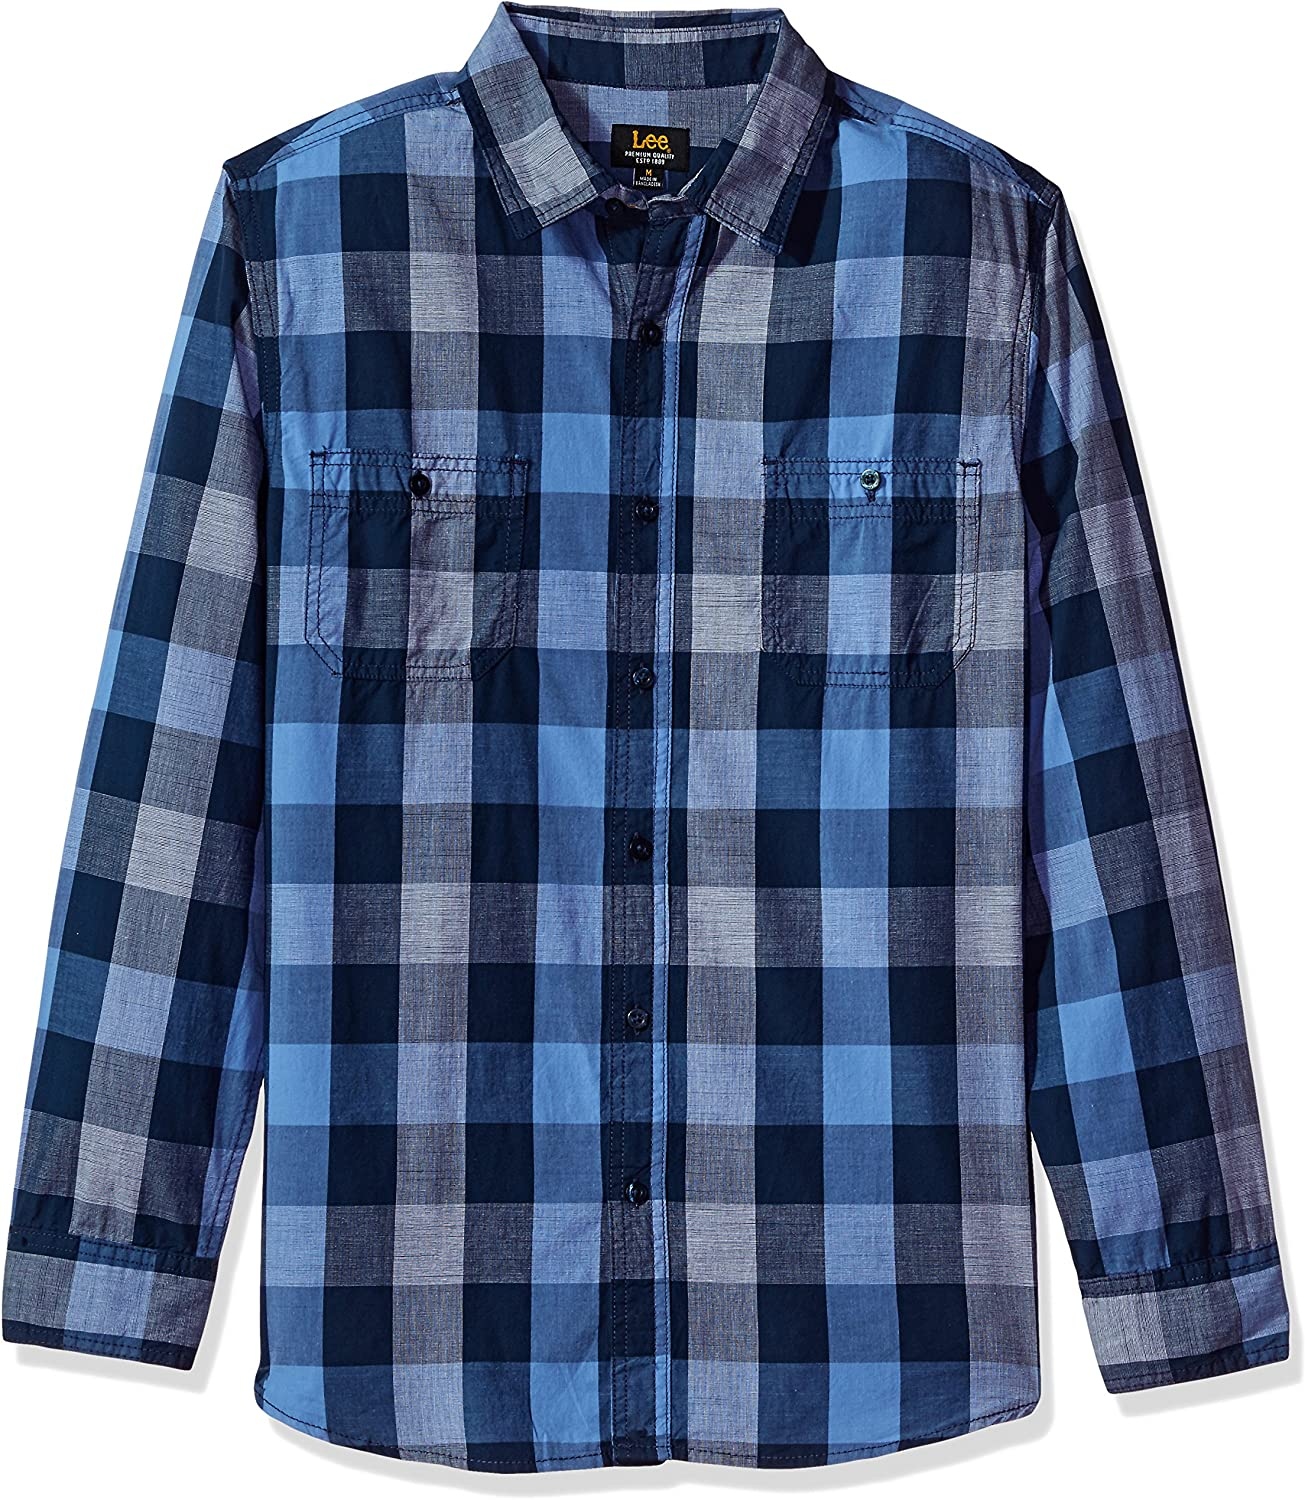 LEE Mens Long Sleeve Plaid Button Down Shirts